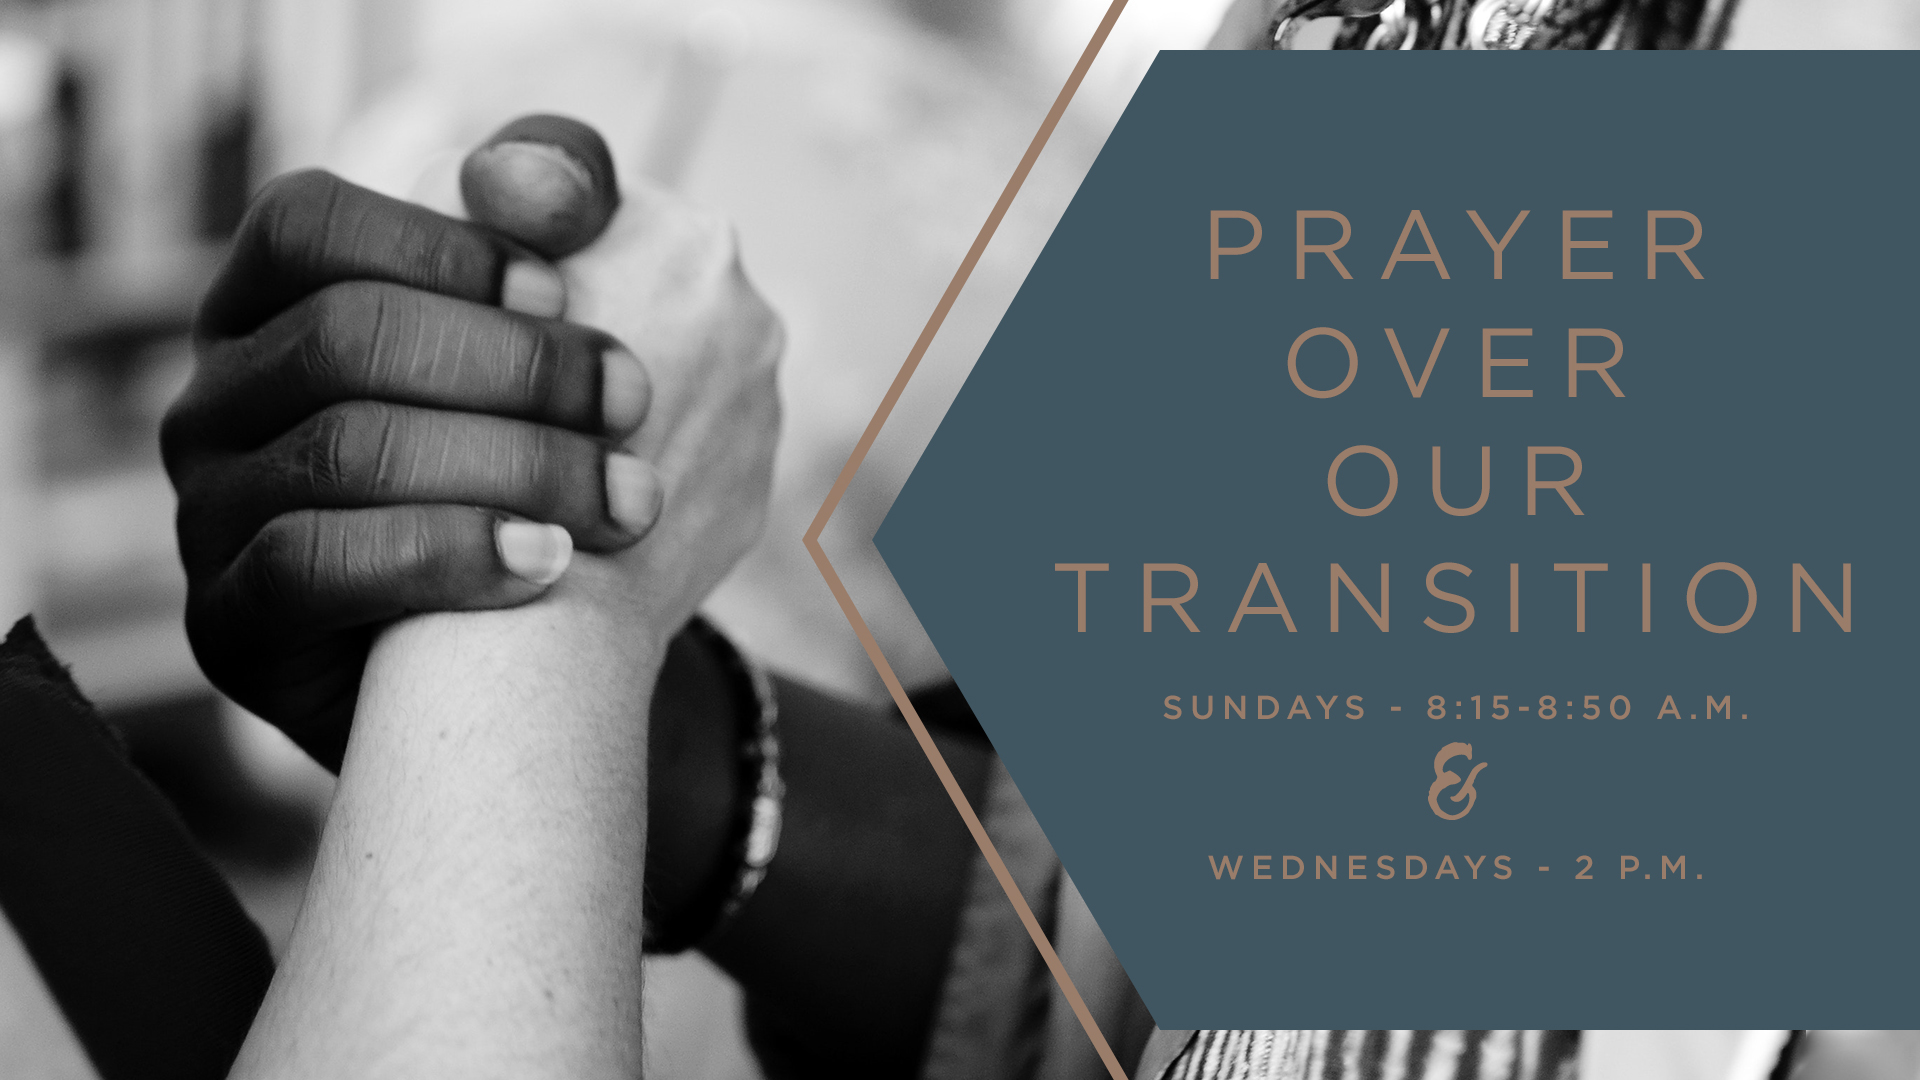 "Prayer over our Transition -  Pray with us as we anticipate the arrival of our Interim Senior Pastor, Dr. Mark Brewer, in August. The prayer team invites you to renew your efforts in prayer for the future of our church. Please pray for the energy and endurance of our staff, and for the formation of the Senior Pastor Nominating Committee. May we be open to what new things God is doing in our midst. Isaiah 43:19 proclaims, ""Now I am doing a new thing; do you not perceive it?"" Join in corporate prayer on Sundays from 8:15-8:50 a.m. in the Library and Wednesdays at 2 p.m. for a ""Pause for Prayer"" wherever you are. Questions/Information: Claire Hertzler,  clairehertzler@gmail.com"